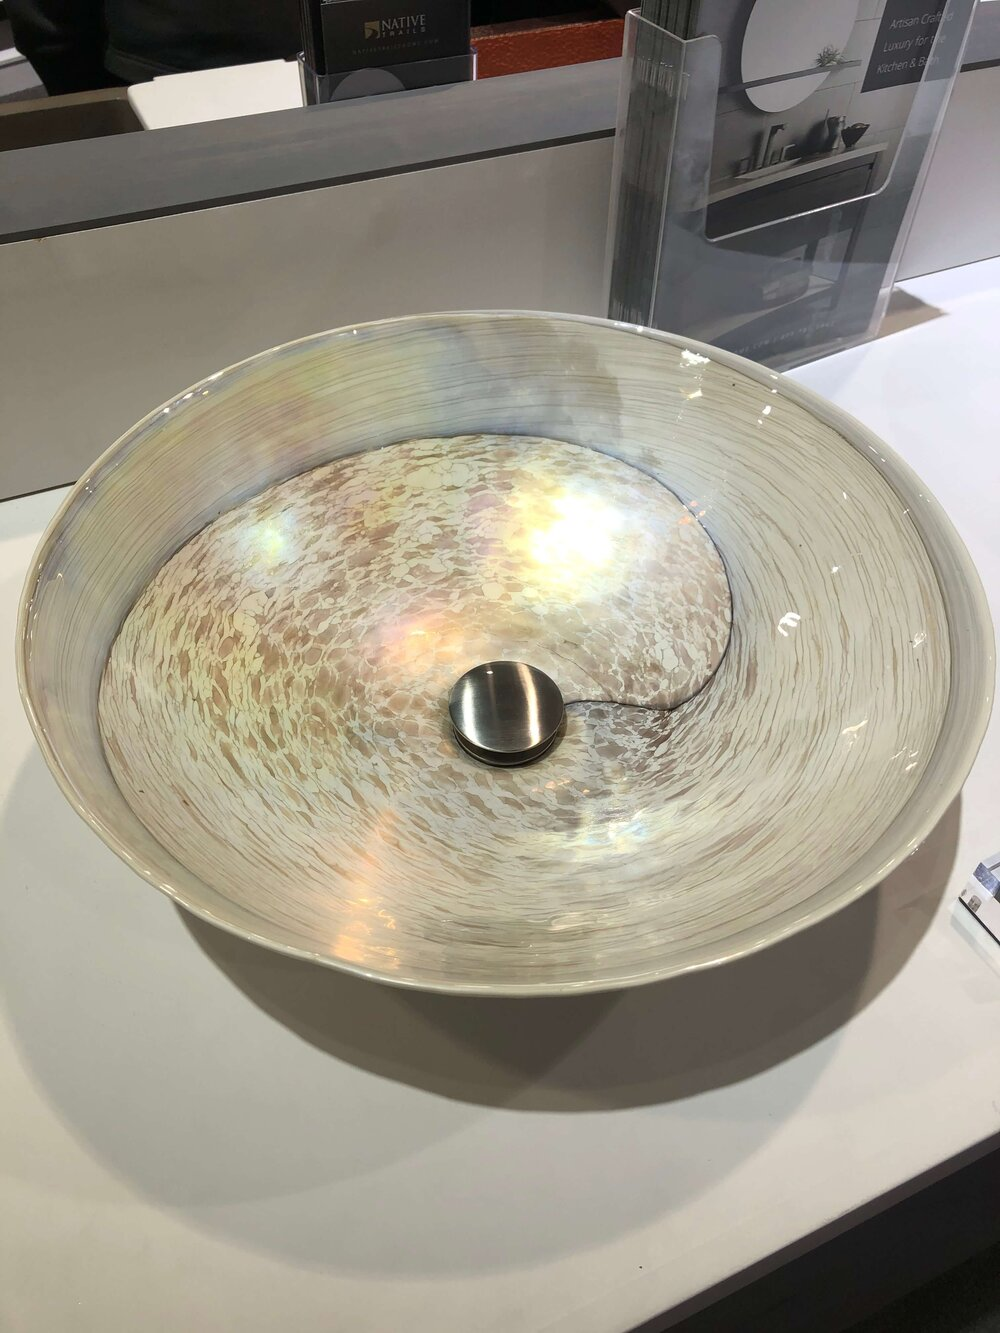 Murano glass vessel sink by Native Trails